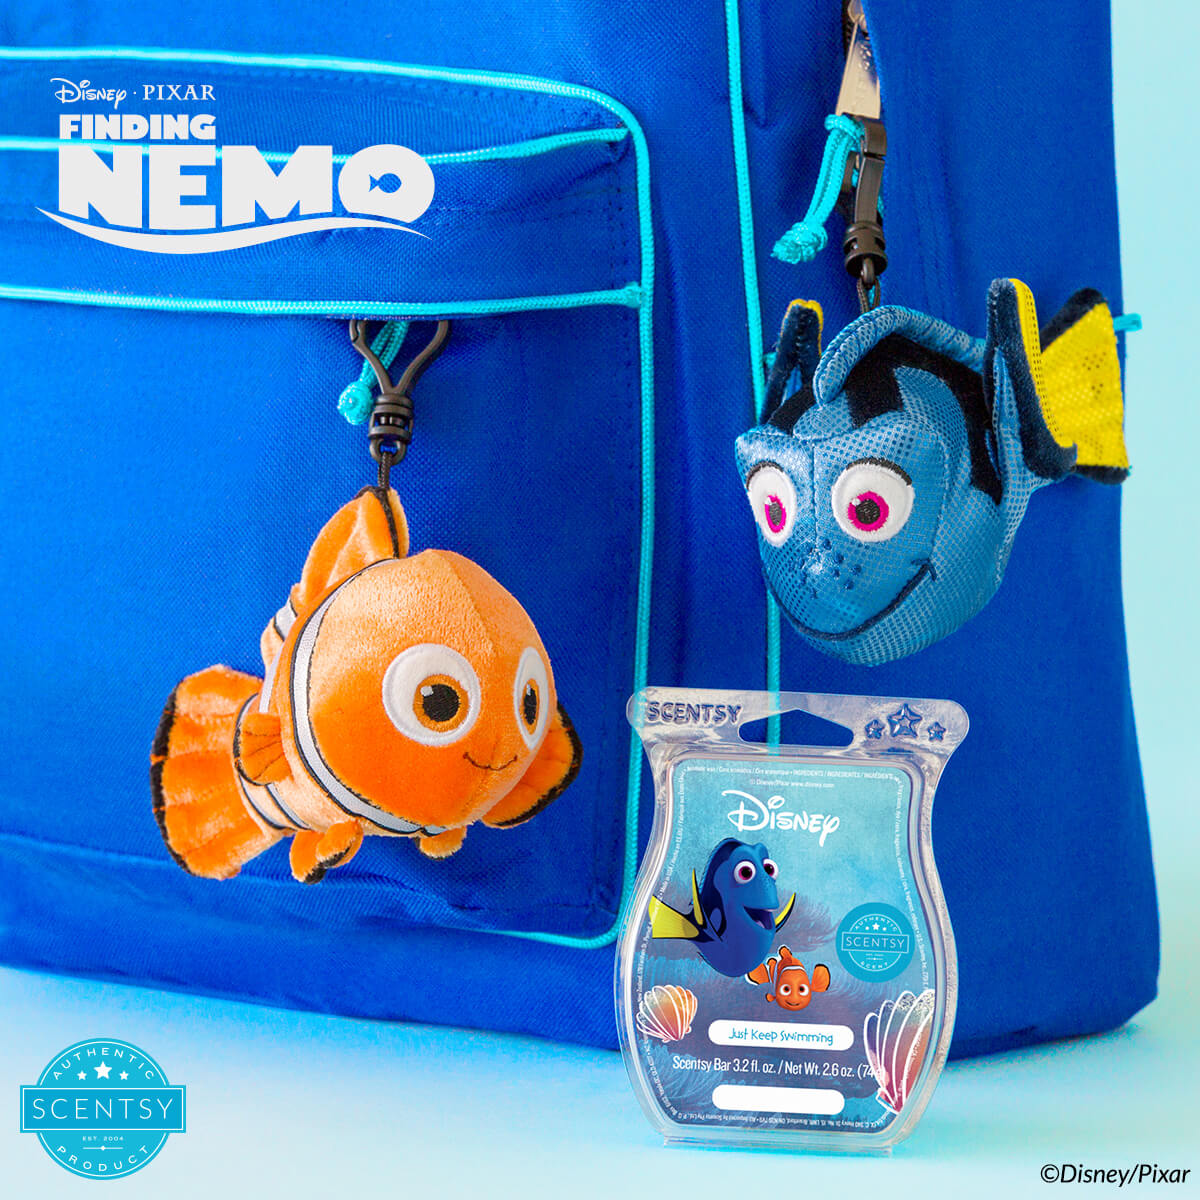 NEMO AND DORY SCENTSY BUDDY CLIPS AND JUST KEEP SWIMMING SCENTSY FRAGRANCE